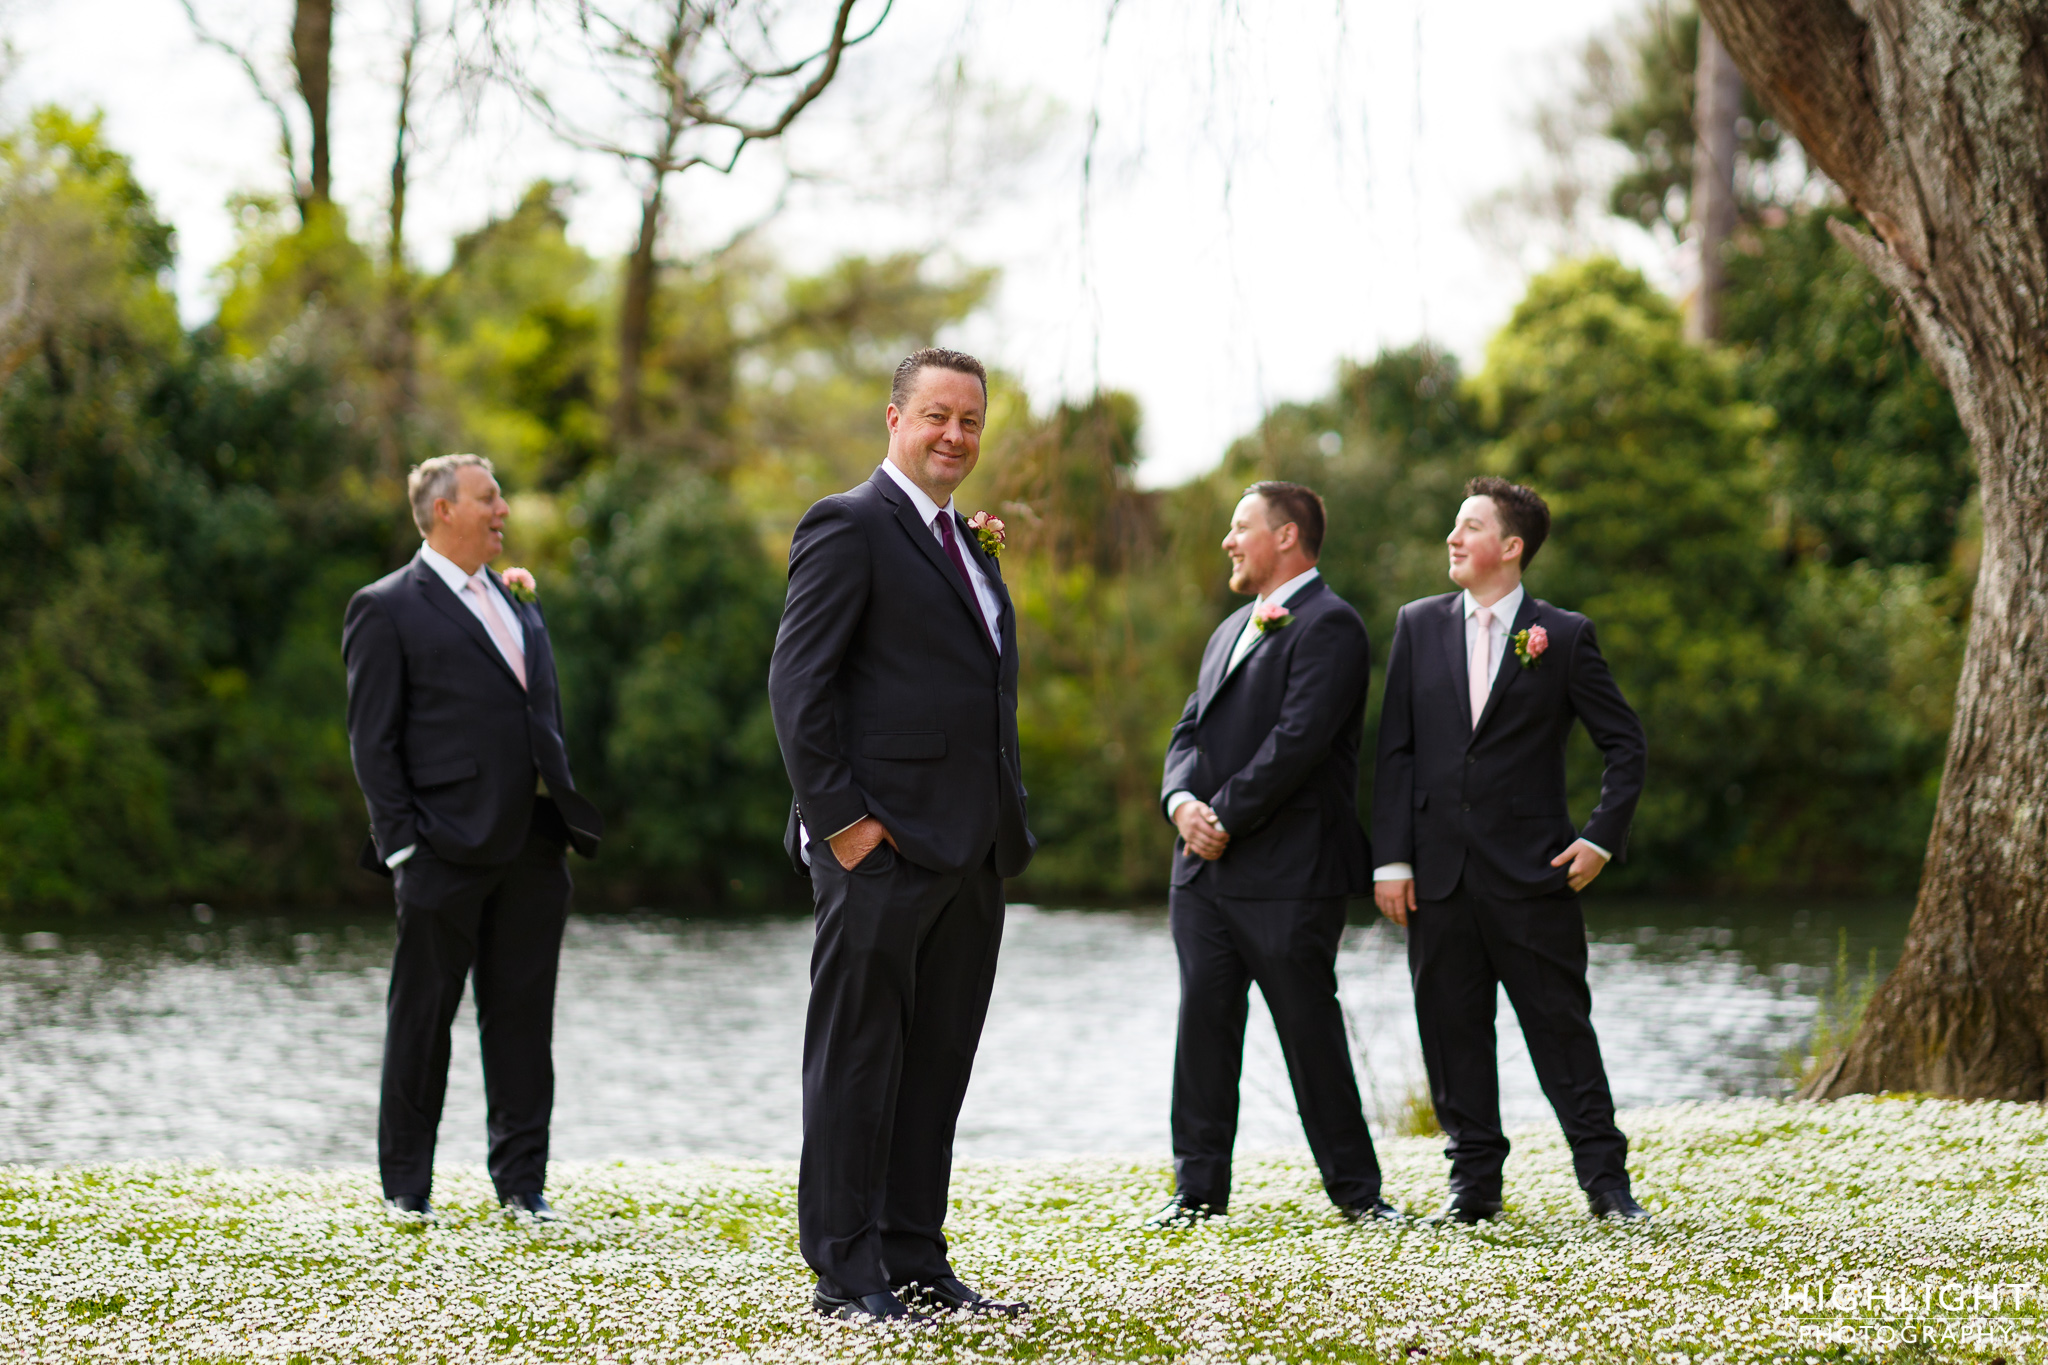 highlight_wedding_photography_palmerston_north_manawatu_chalet_wedding-56.jpg